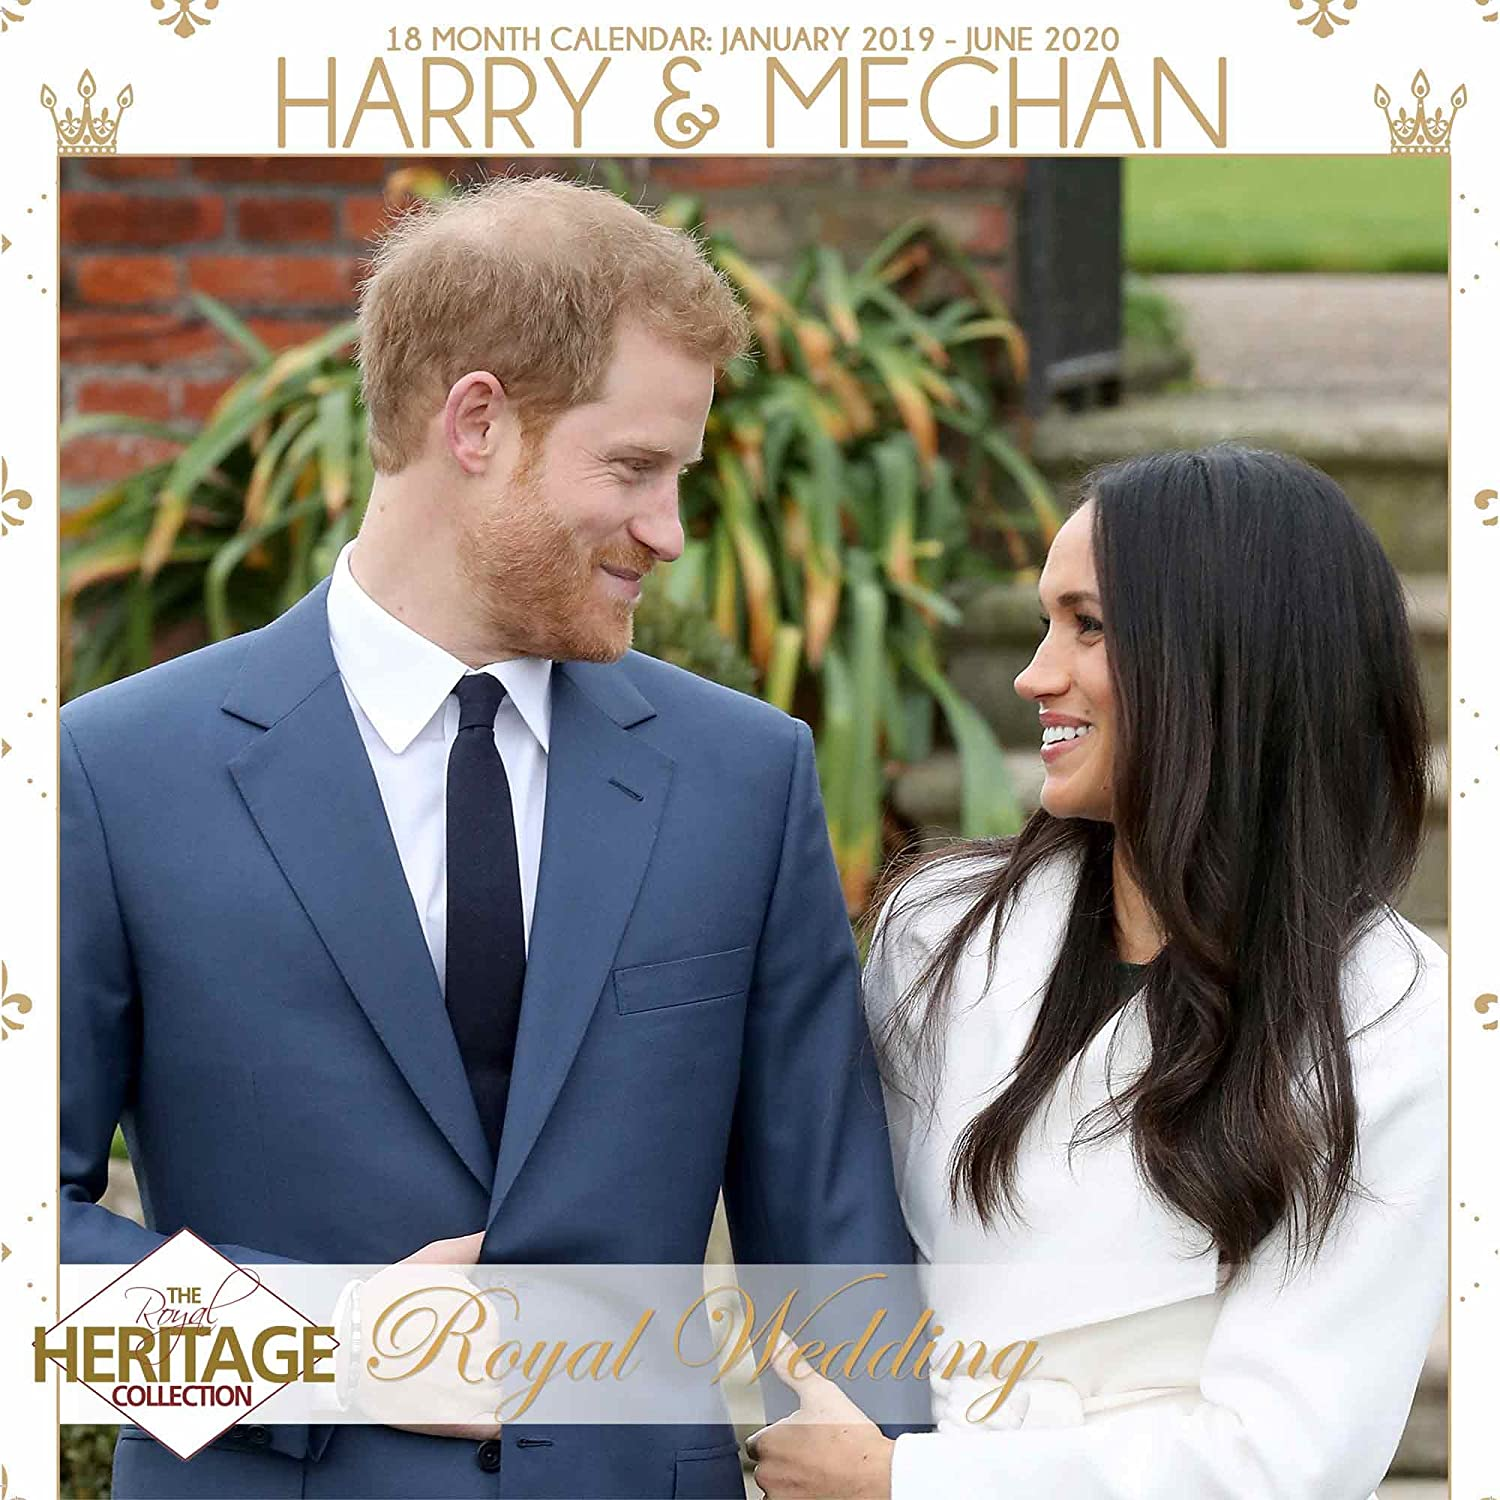 The Royals Harry And Meghan December 2019 Calendar Amazon.| Prince Harry & Meghan Royal Wedding 2019 Calendar